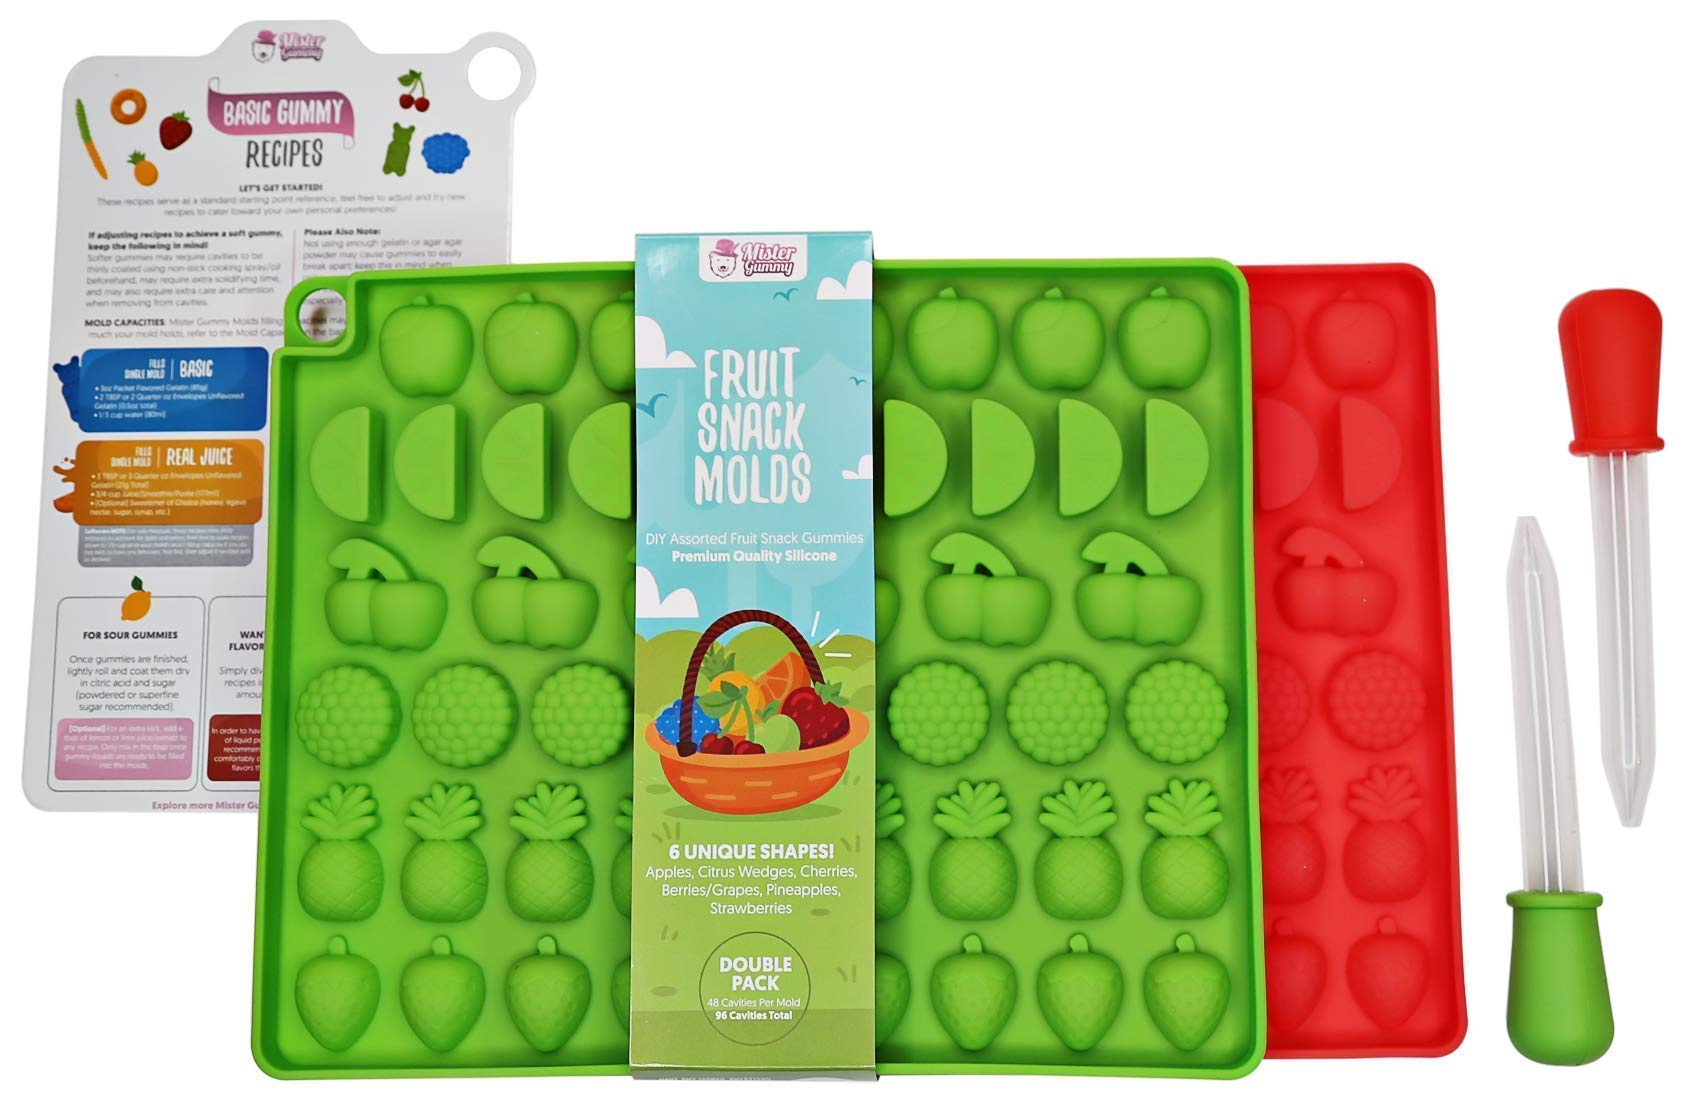 DIY Assorted Fruit Snack Molds by Mister Gummy | Premium BPA-Free LFGB/FDA Silicone | (Make Gummies, Chocolate, Ice Cubes, Candy) - 2 Fruit Molds, 2 Liquid Droppers, Recipe Card, Reusable ZIP-Lock Bag